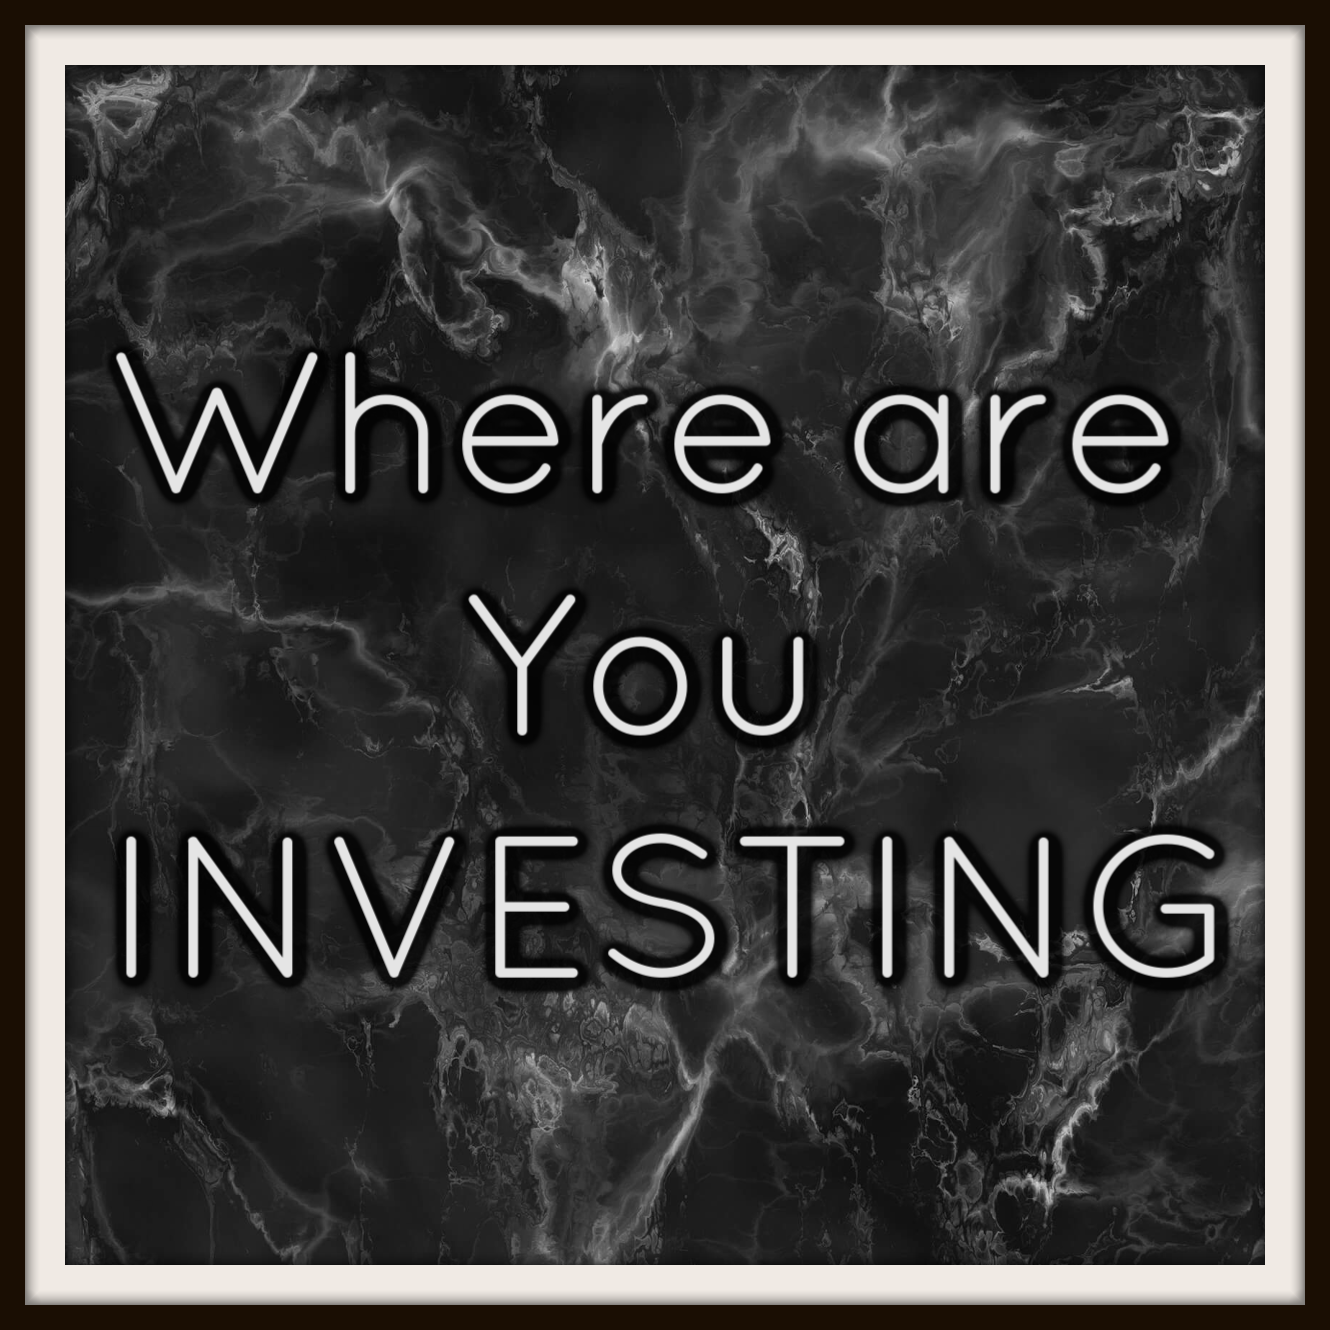 Church: Where are you Investing?